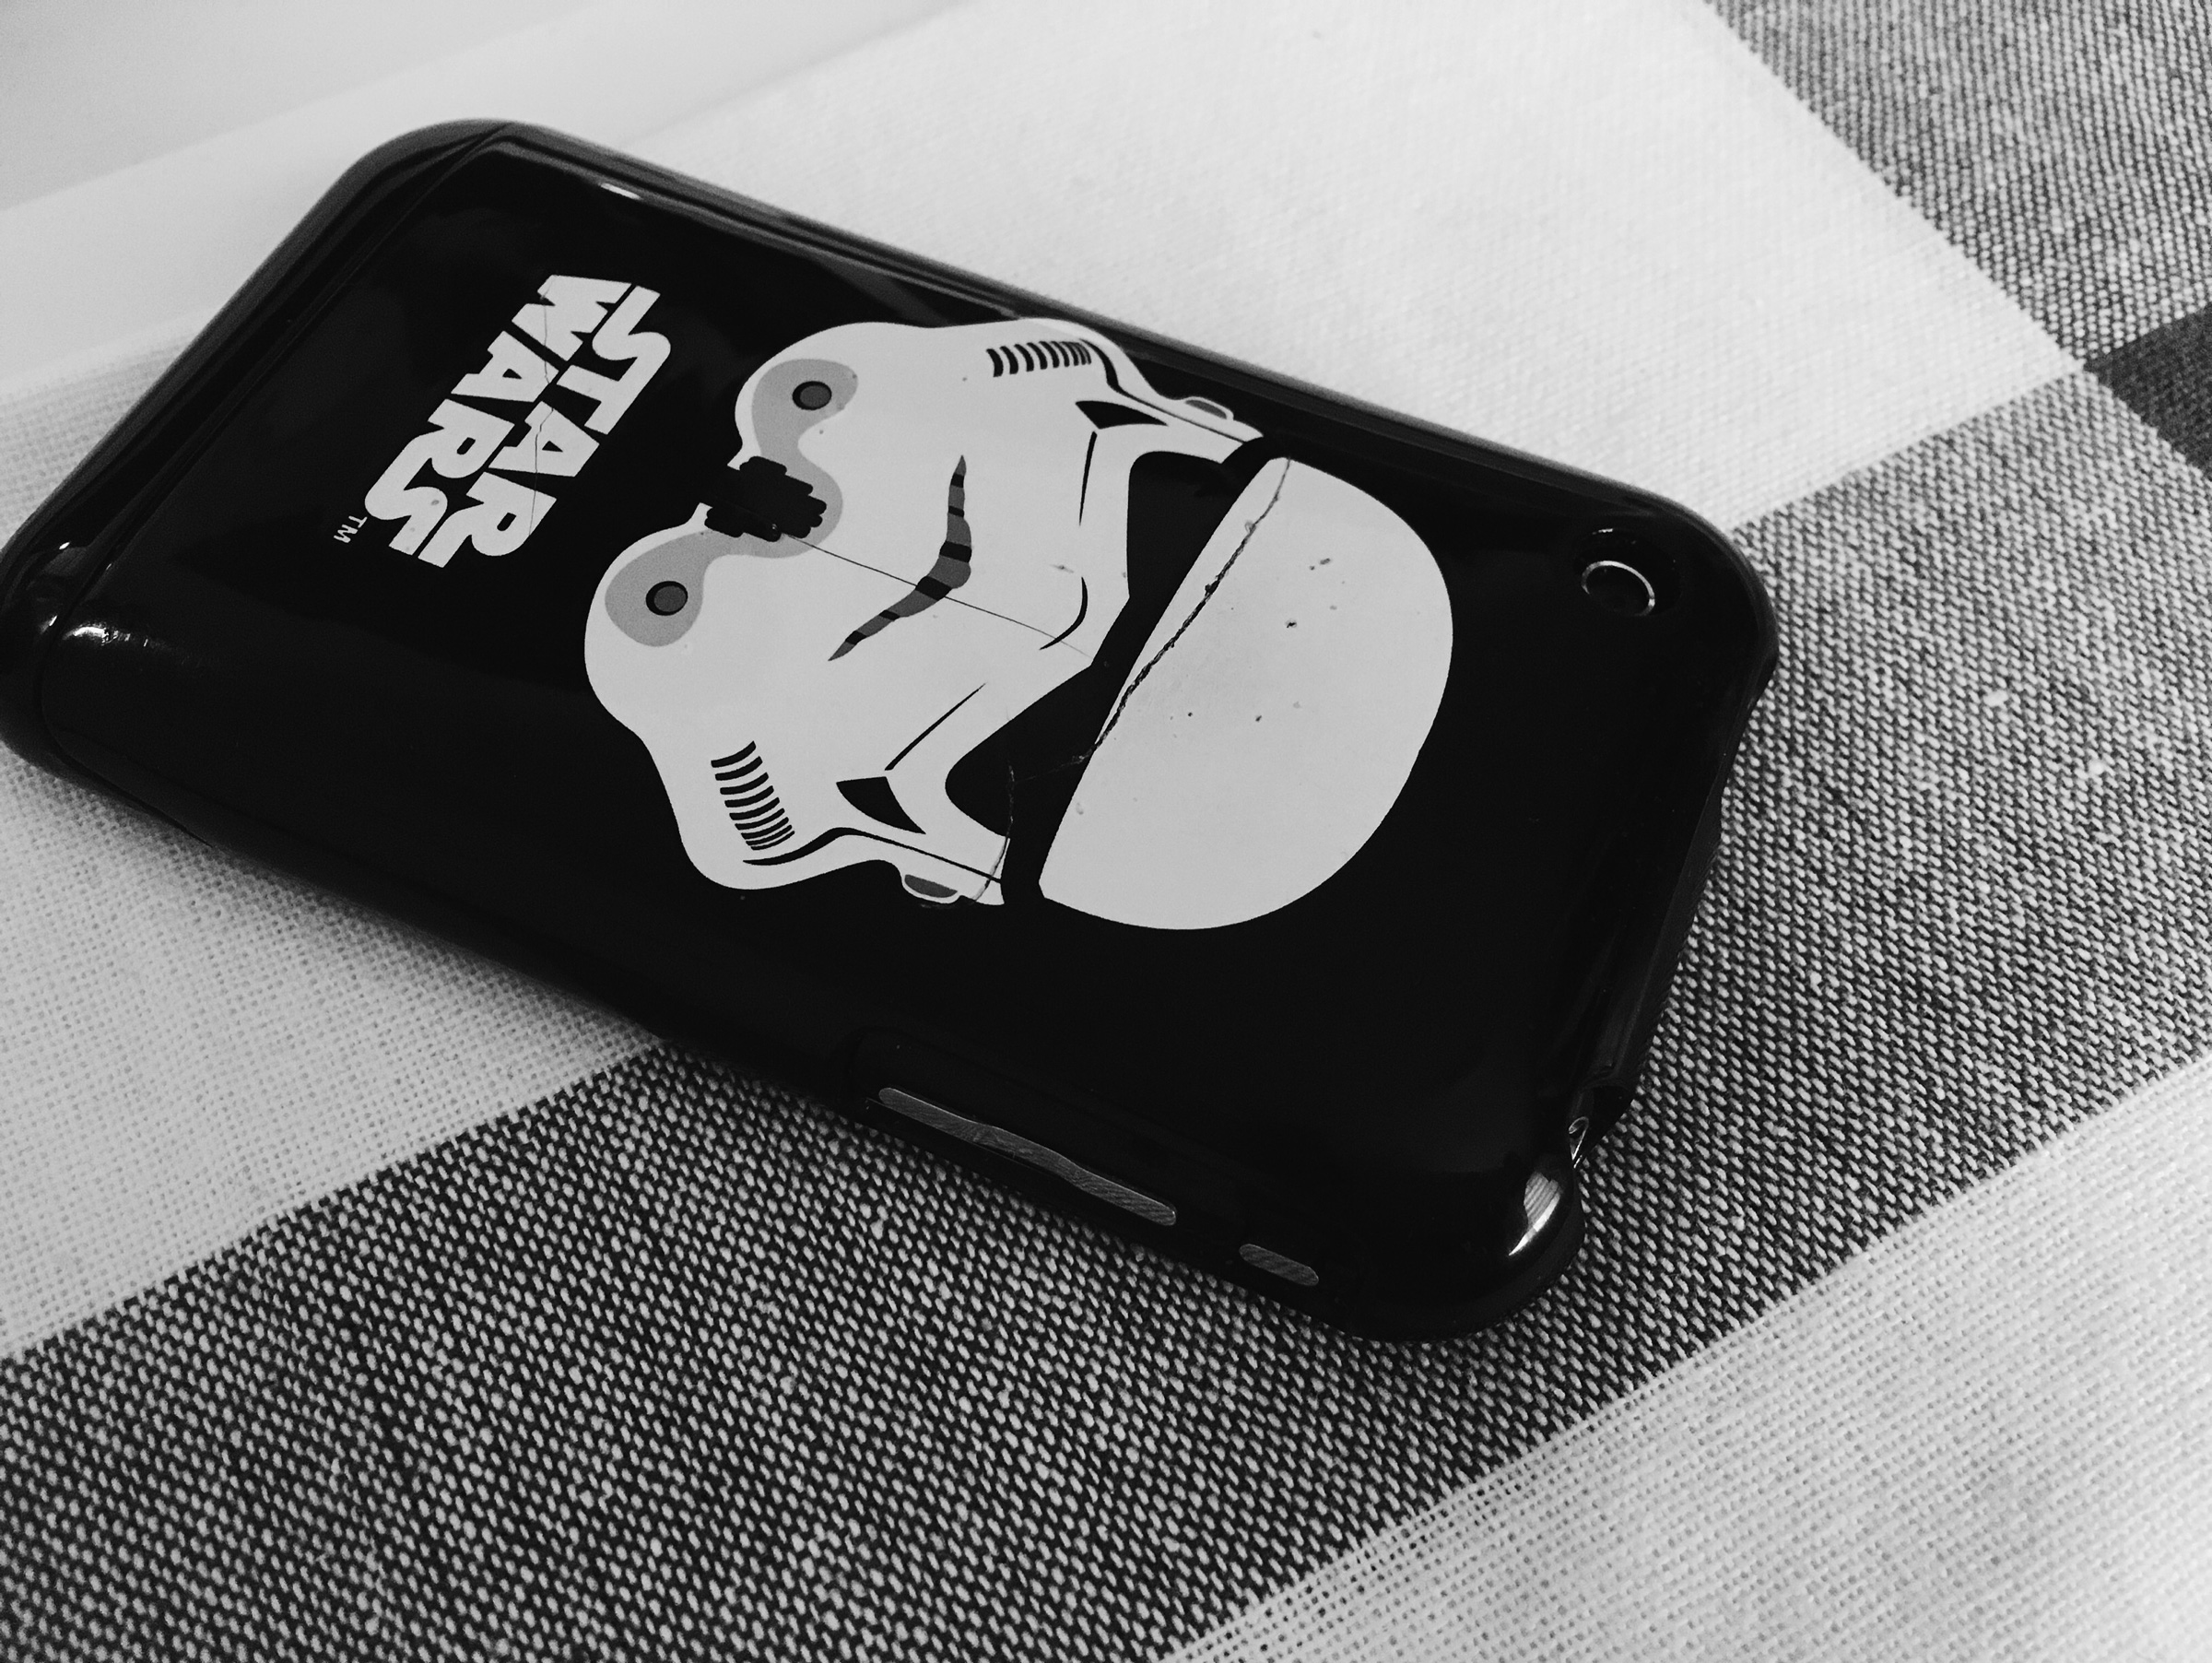 iphone 3gs starwars case